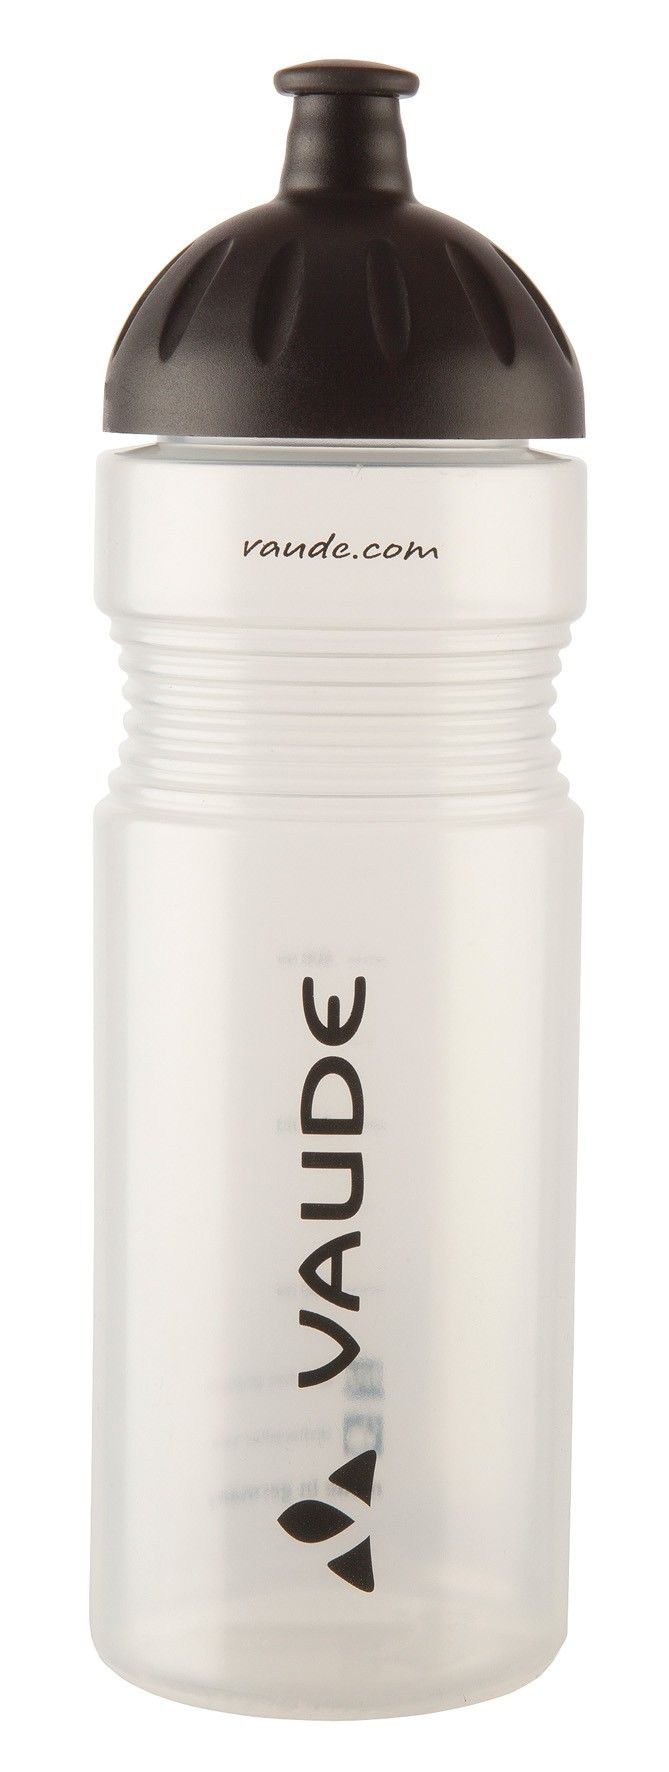 Vaude Outback Bike Bottle 0.75L 0.75L -Farbe Transparent, 0.75L